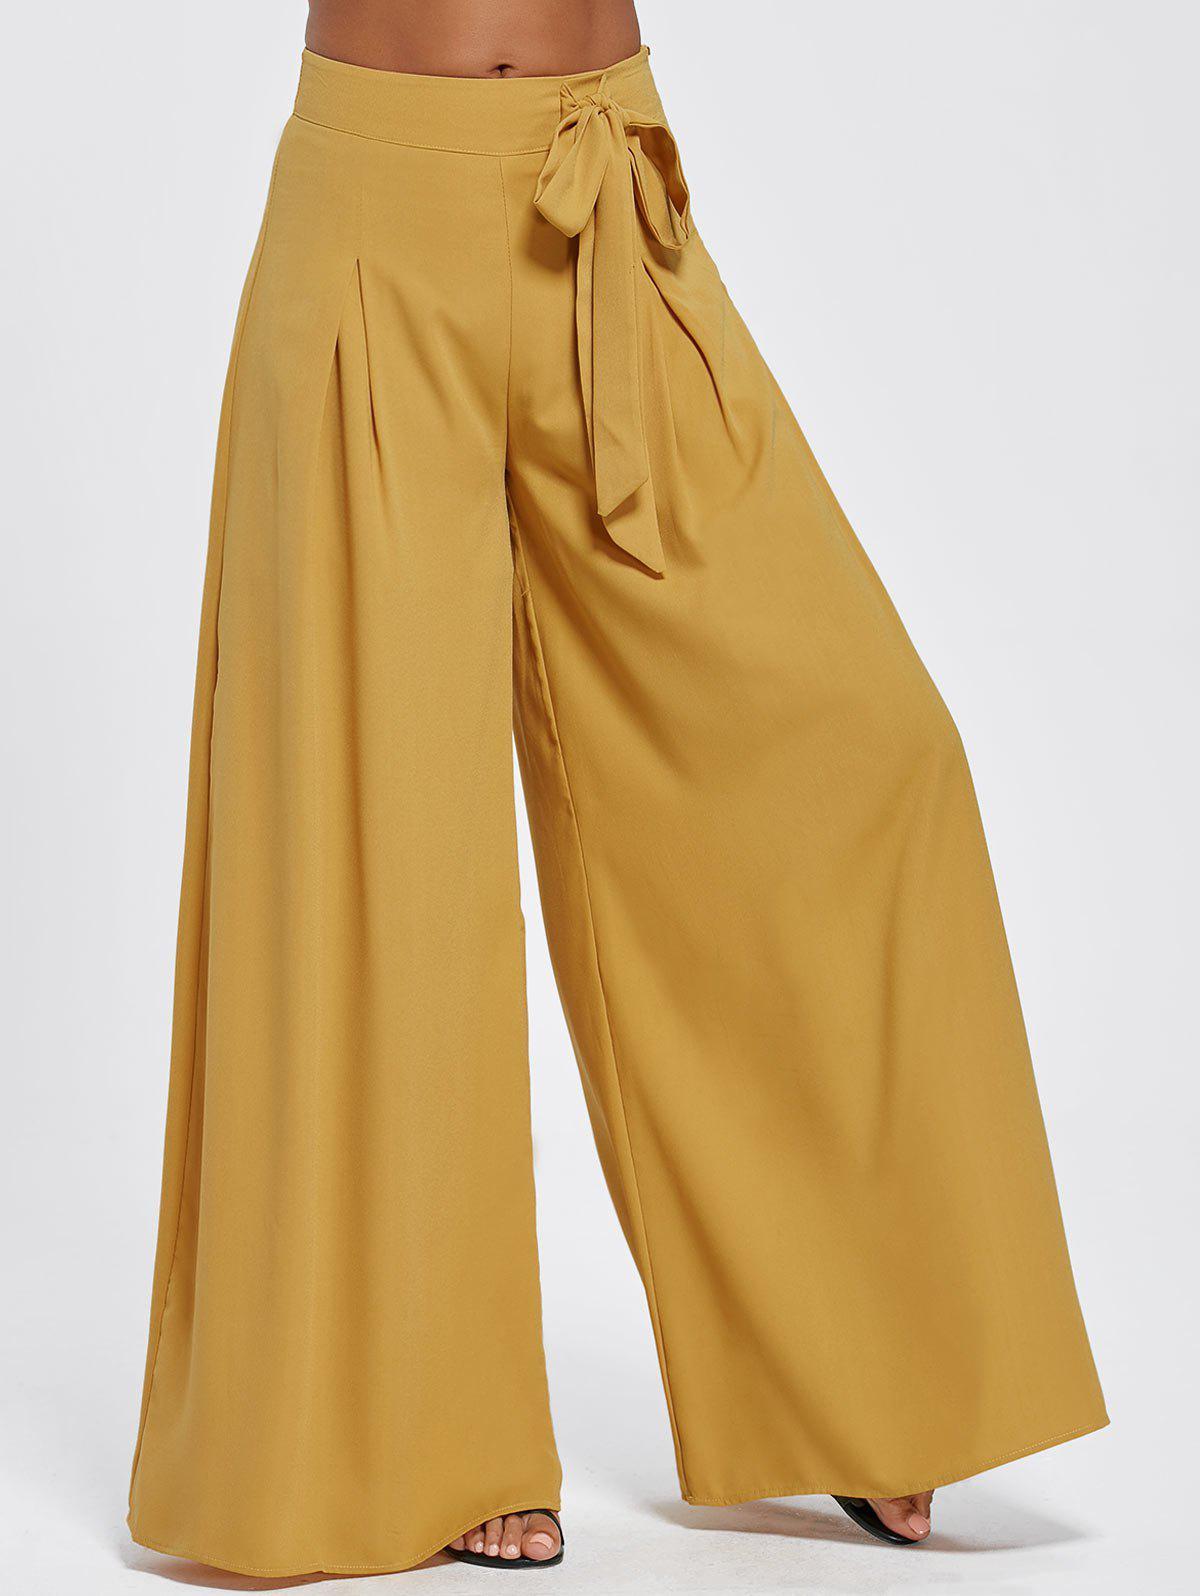 Drawstring High Waisted Wide Leg PantsWOMEN<br><br>Size: 2XL; Color: EARTHY; Style: Fashion; Length: Normal; Material: Cotton,Polyester; Fit Type: Regular; Waist Type: High; Closure Type: Drawstring; Pattern Type: Solid; Pant Style: Wide Leg Pants; Weight: 0.5500kg; Package Contents: 1 x Pants;